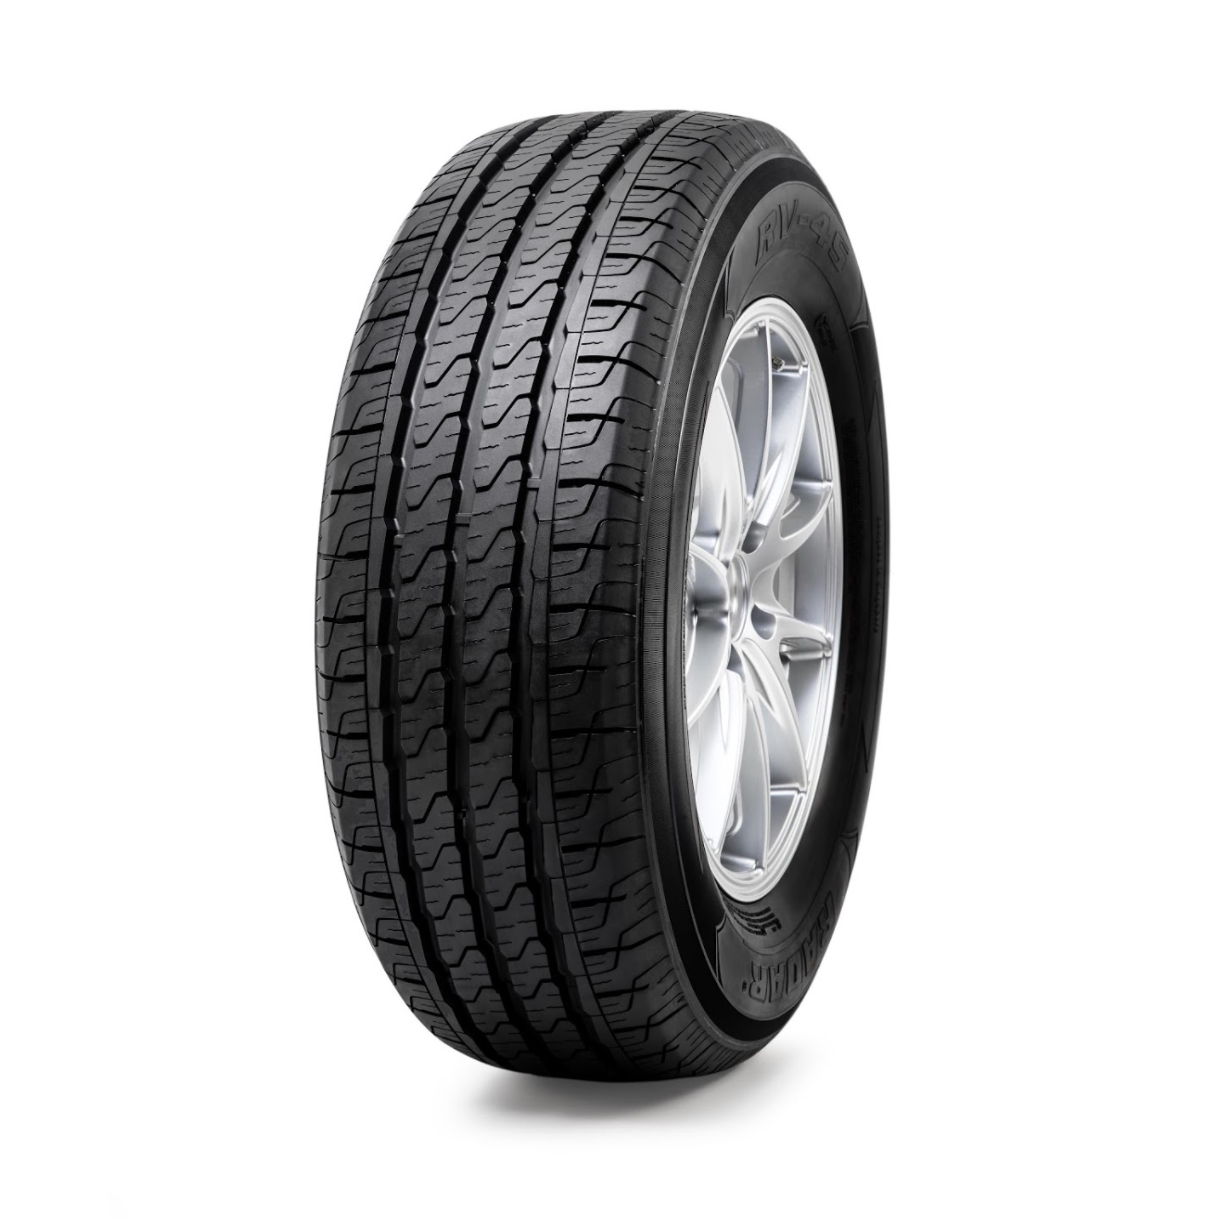 Summer Tyre RADAR ARGONITE (RV-4) 205/75R16 113/111 R